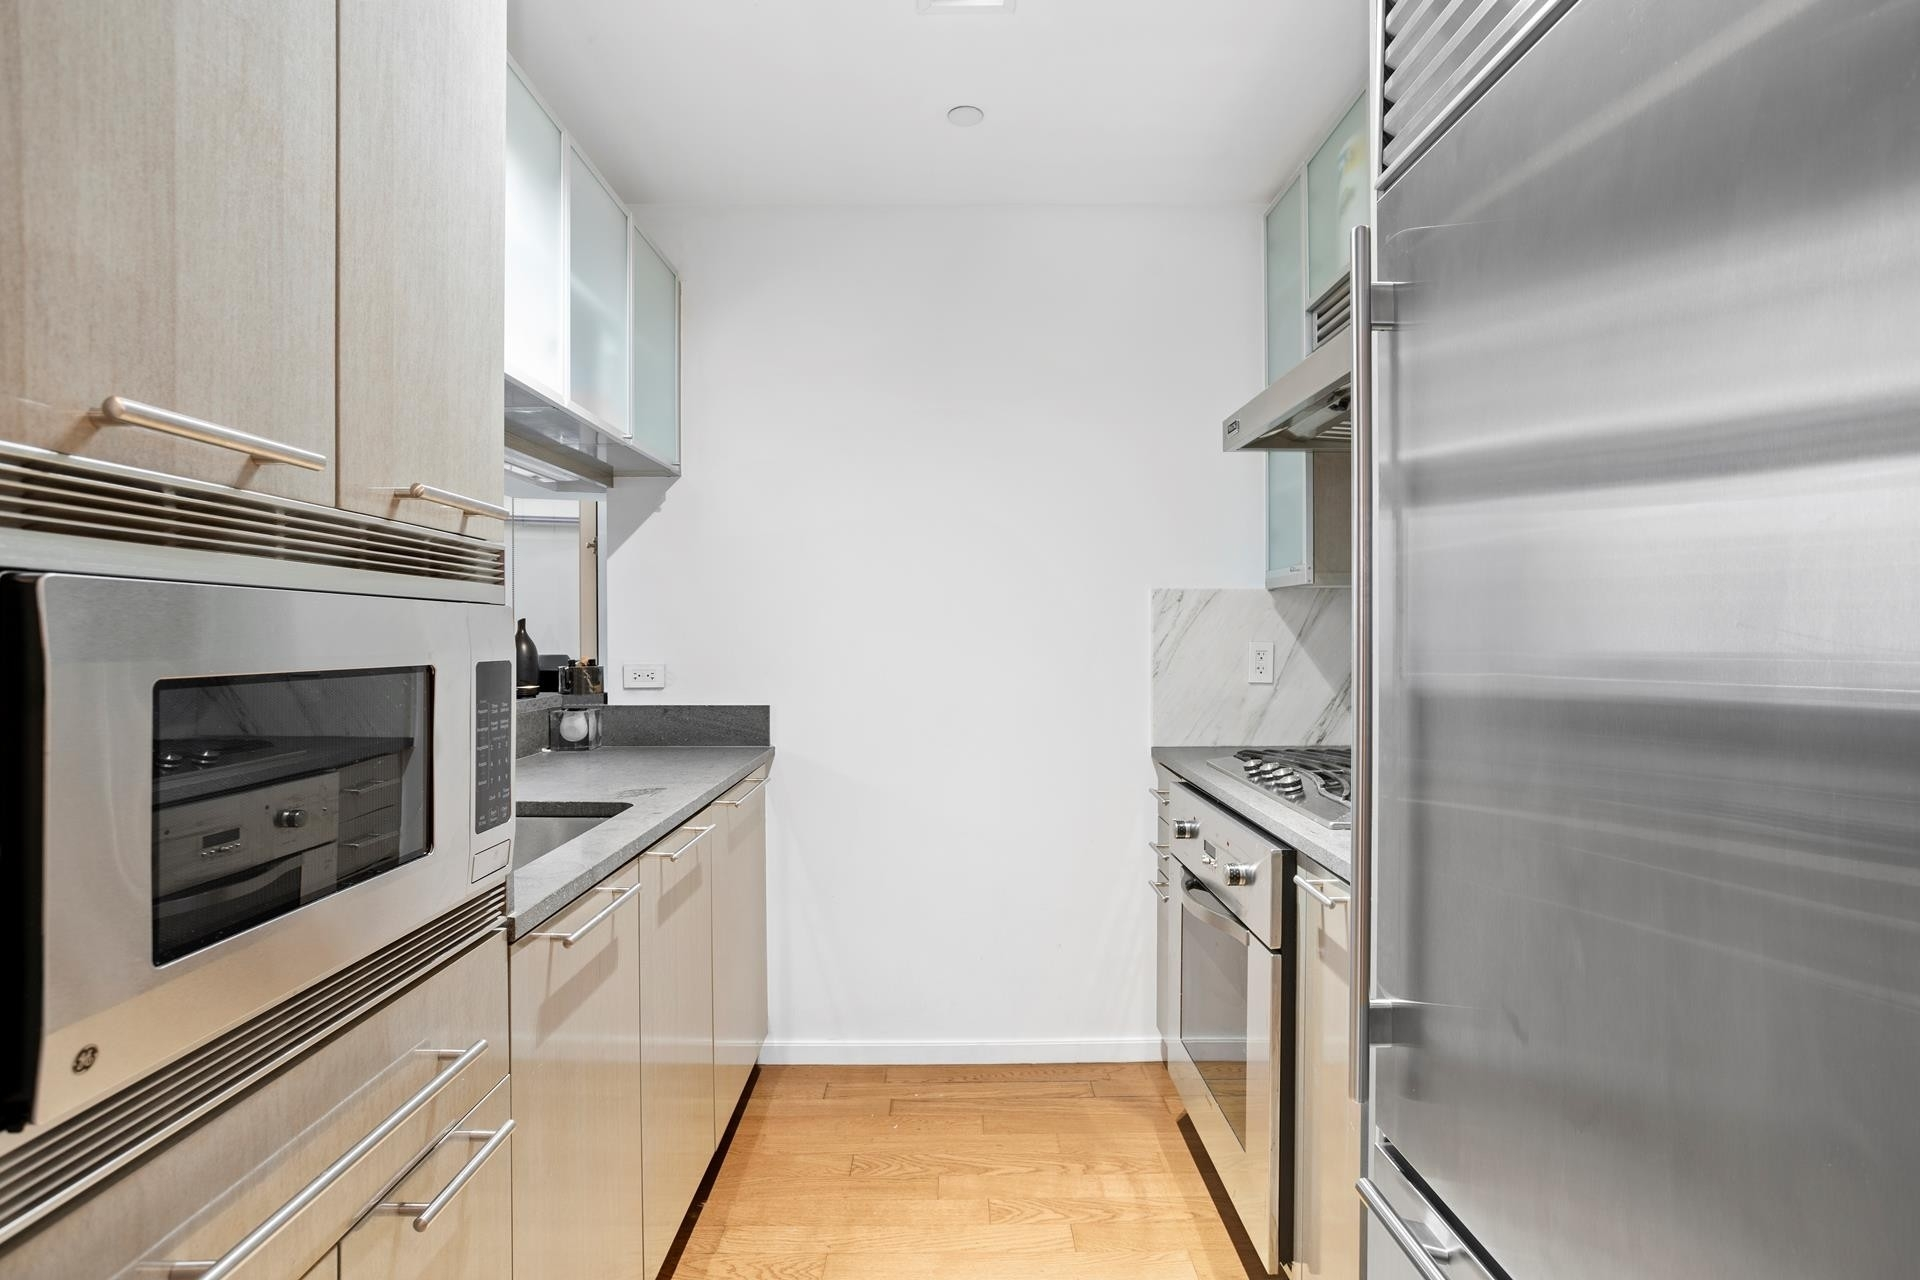 Property at 200 Chambers St, 7T TriBeCa, New York, NY 10007